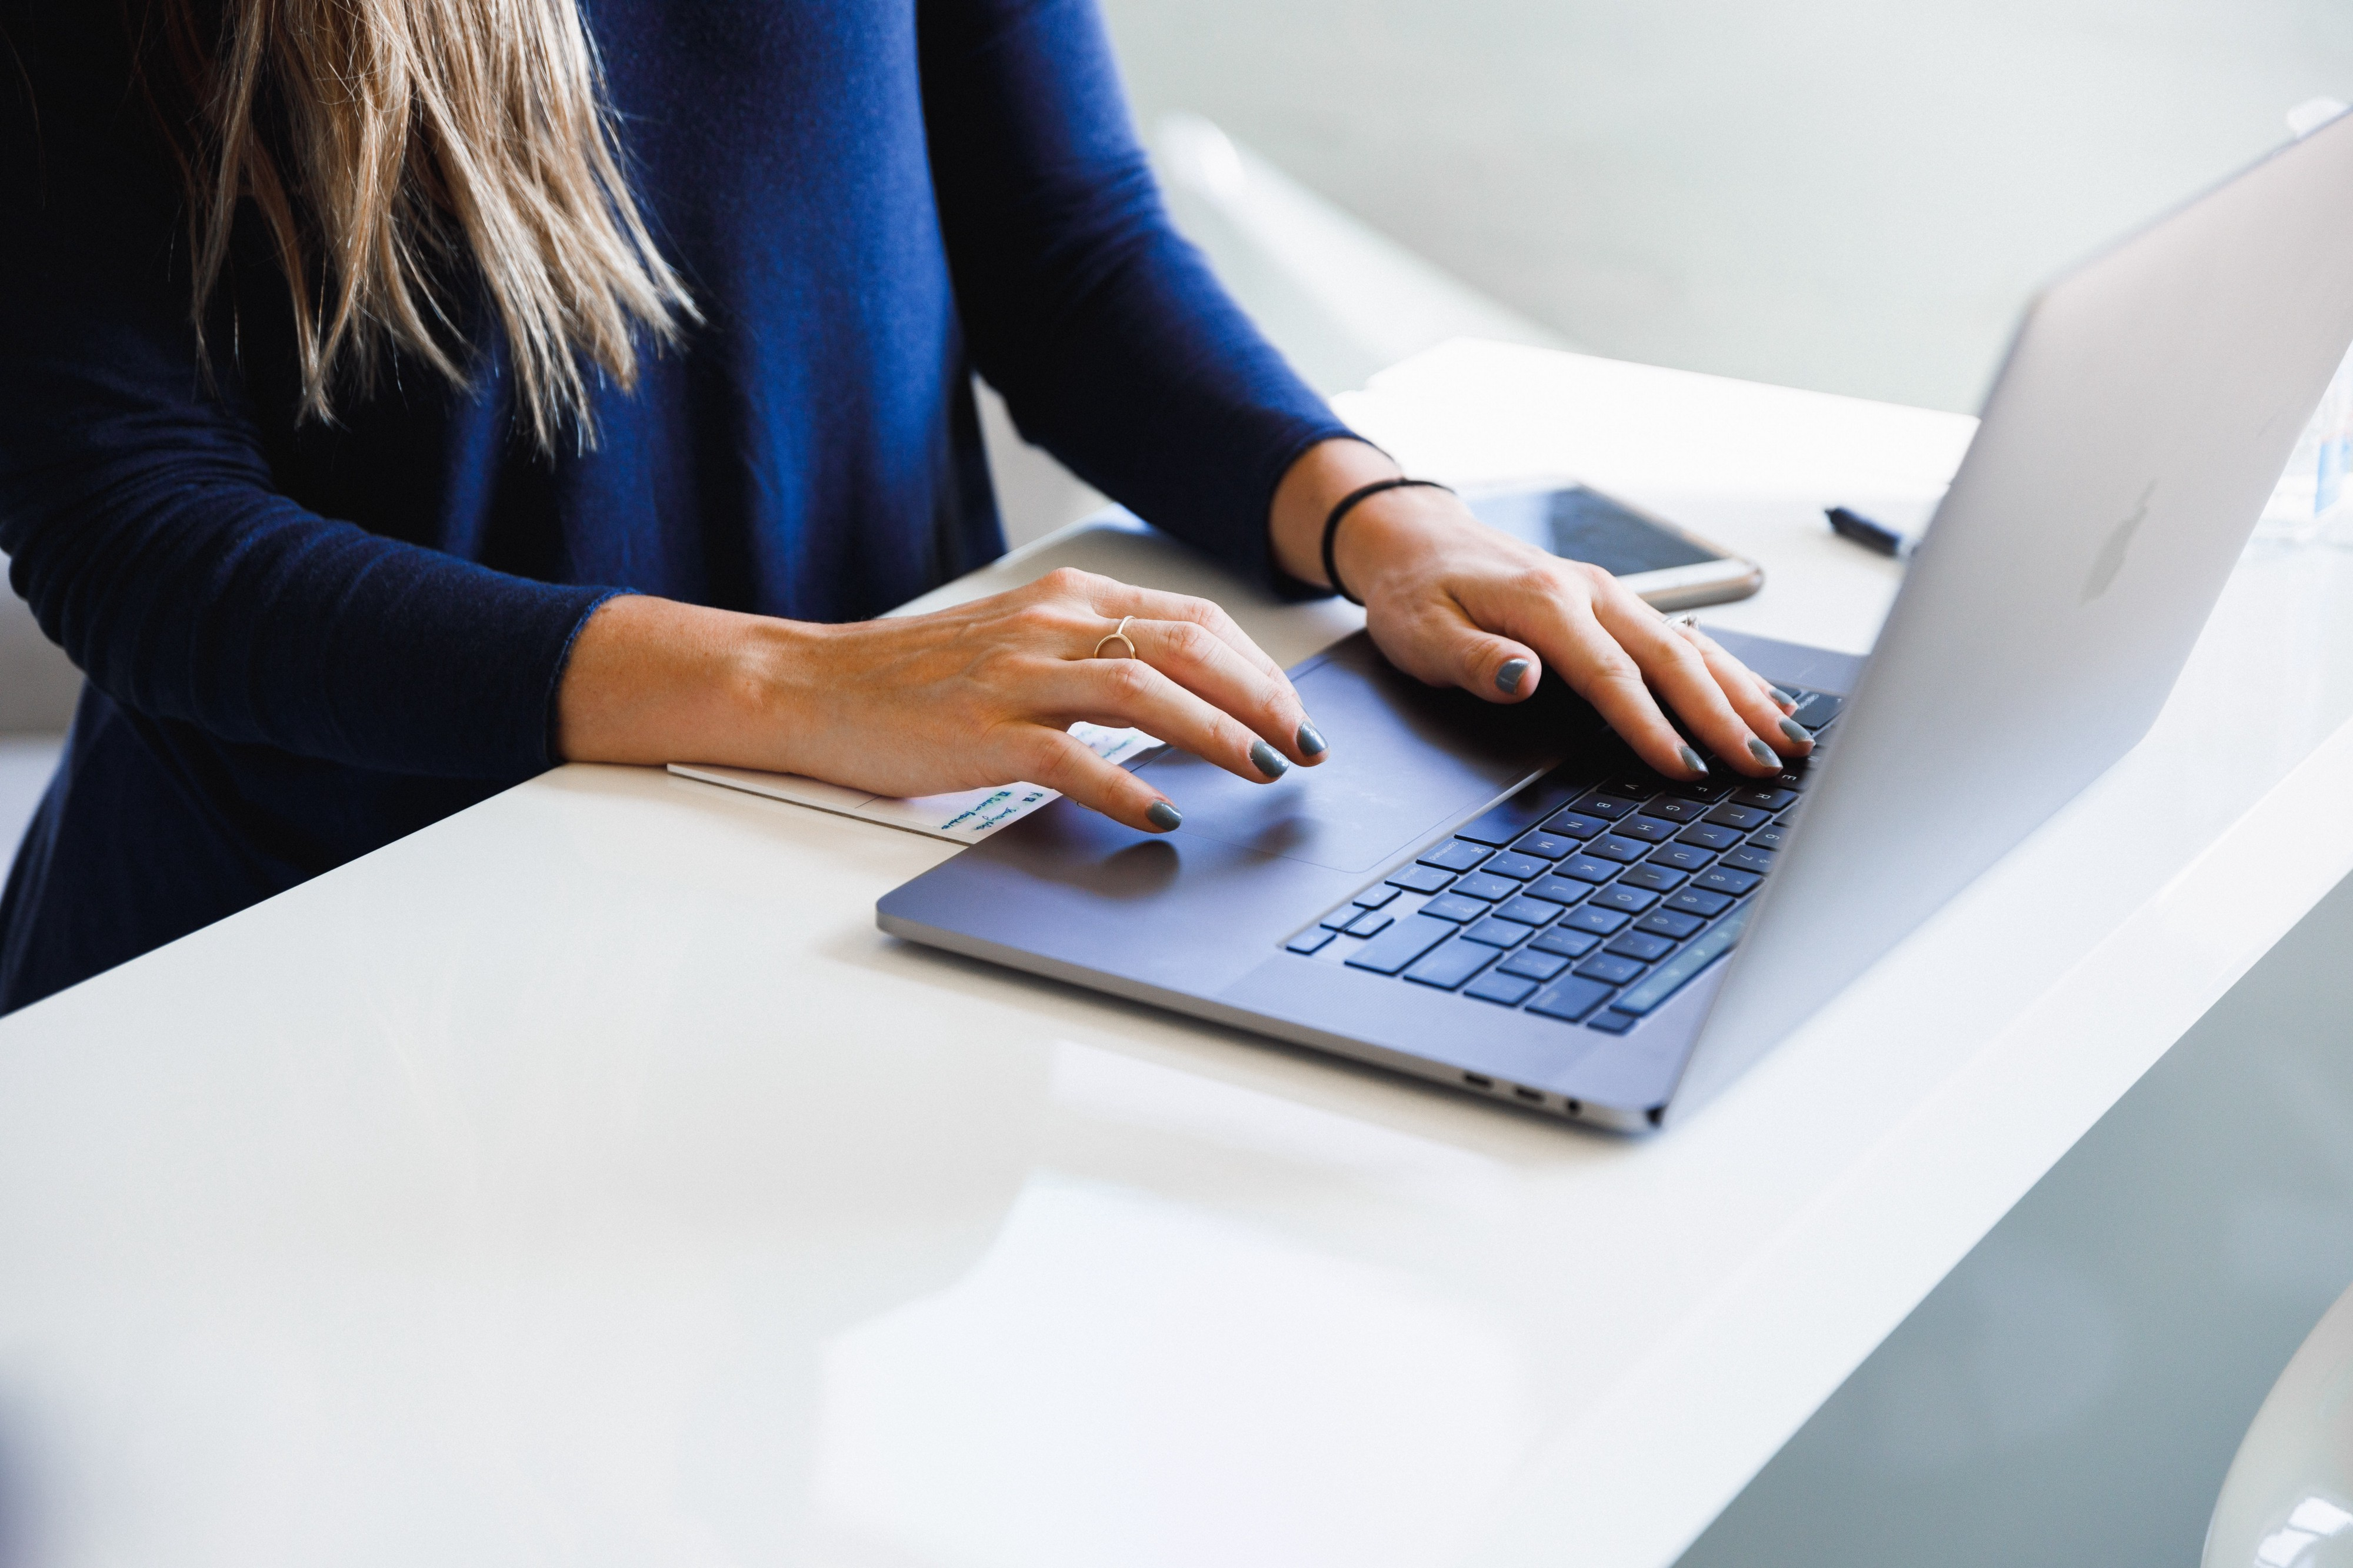 A person typing something into the laptop while standing by the white table.